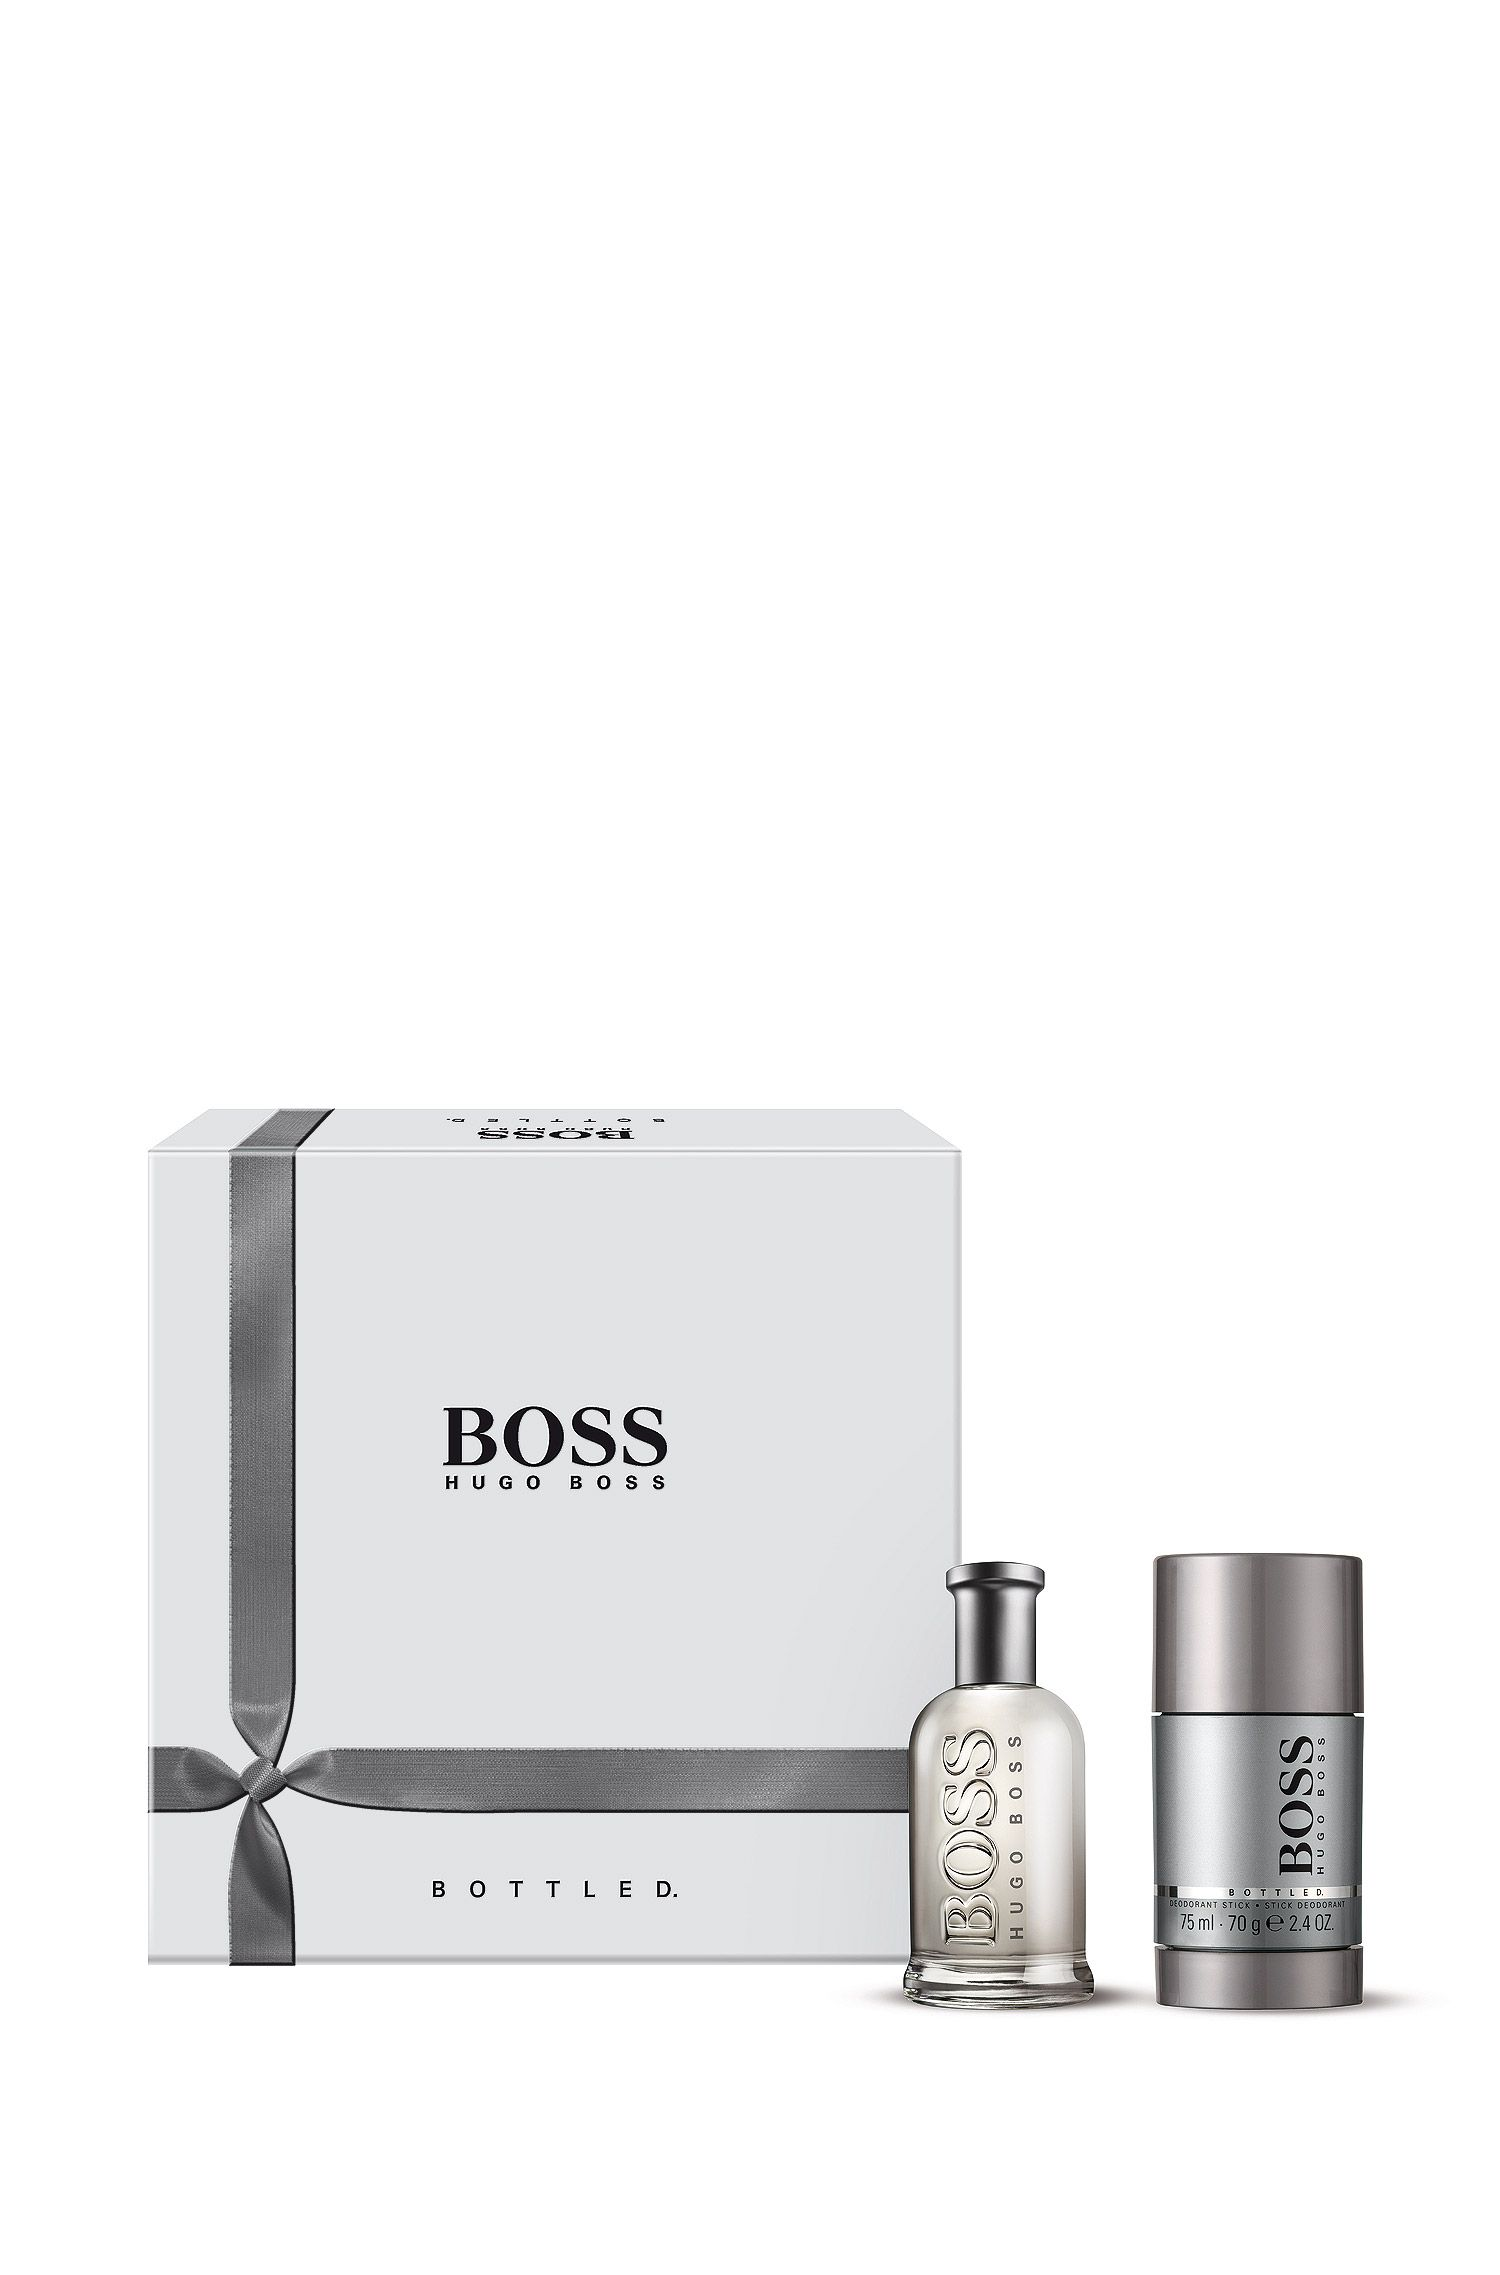 Coffret cadeau BOSS Bottled